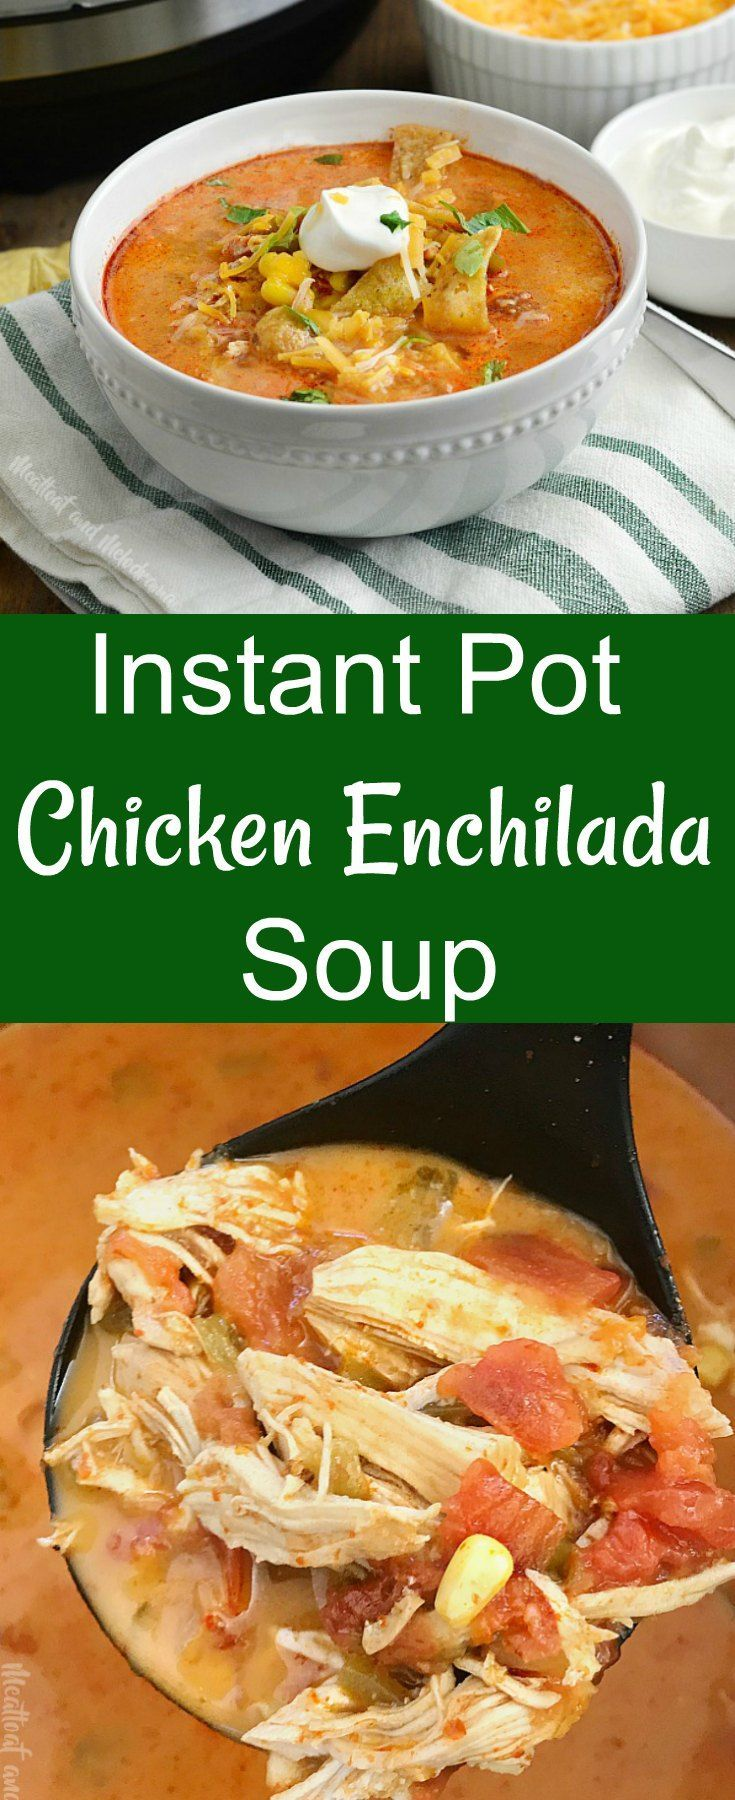 Instant Pot Chicken Enchilada Soup - A quick and easy chicken soup recipe made in the pressure cooker. Perfect easy comfort food dinner for busy days and kid friendly too! from Meatloaf and Melodrama #InstantPot #pressurecooker #easydinner